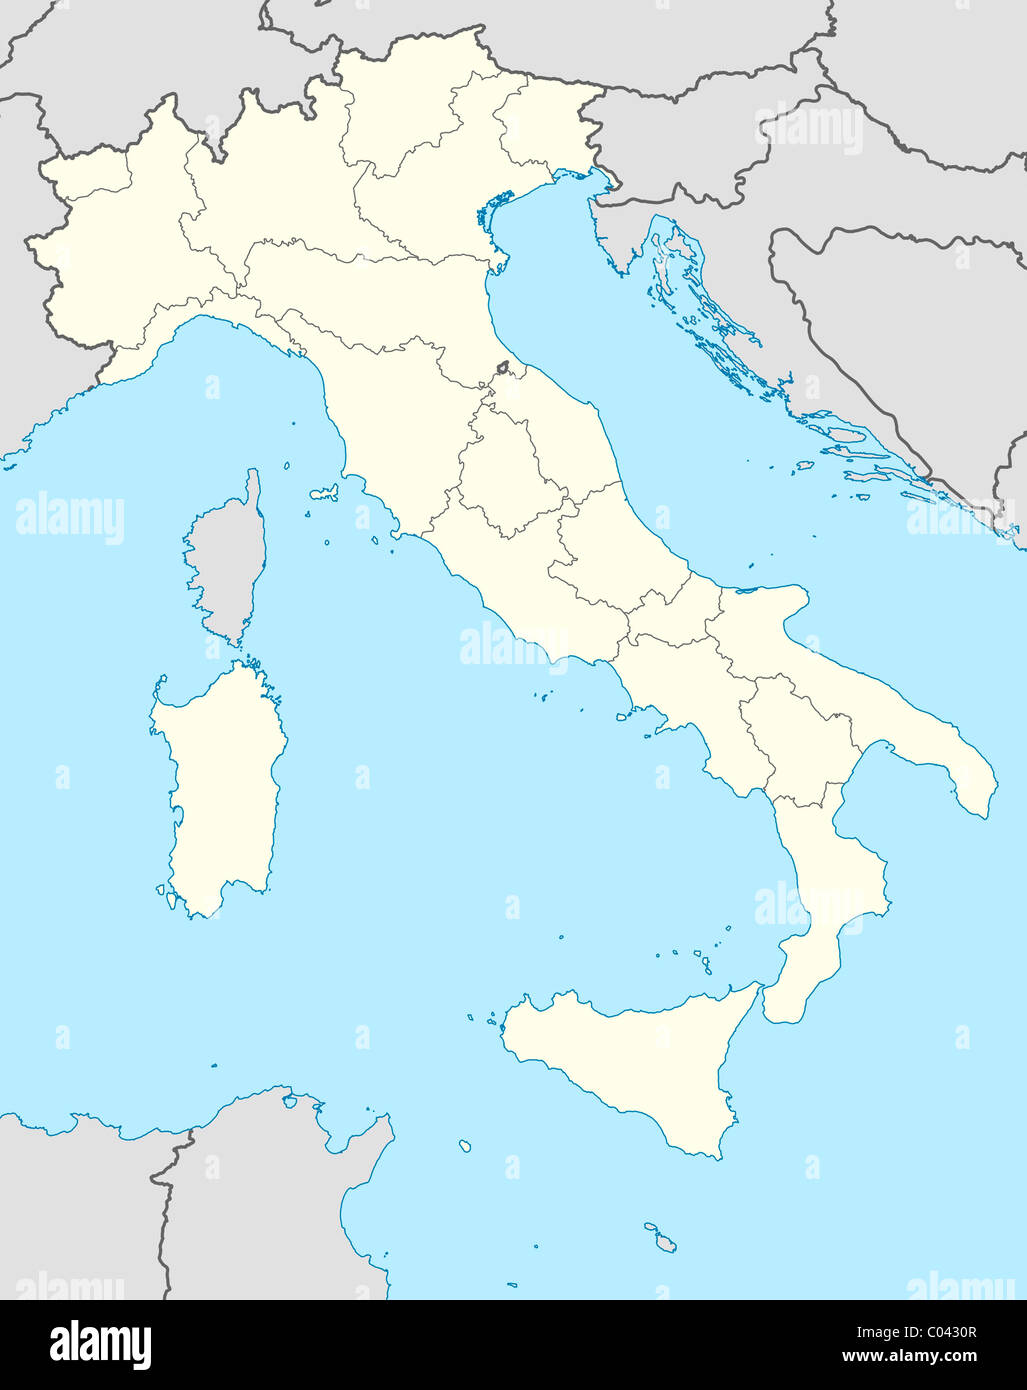 Picture of: Illustrated Map Of The Country Of Italy In Europe Stock Photo Alamy